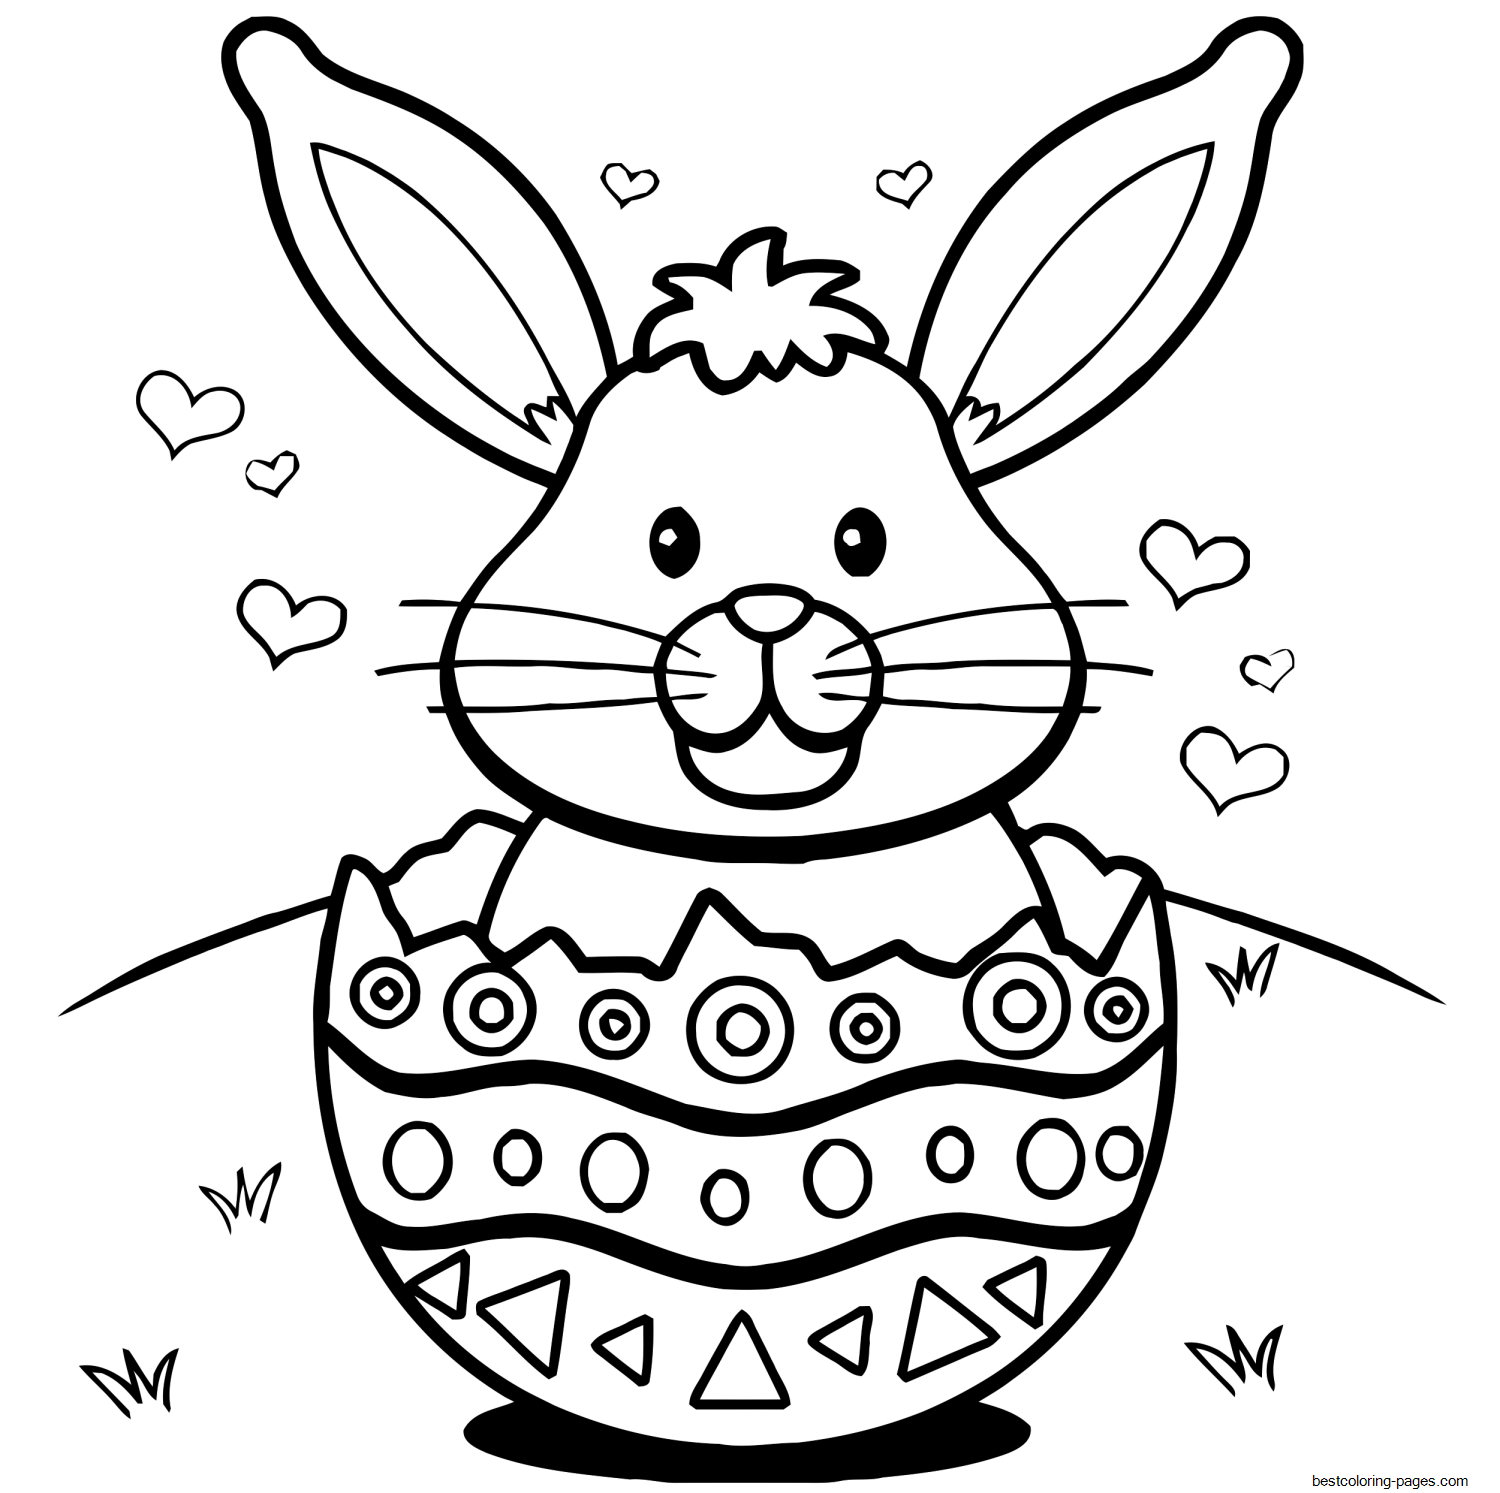 easter bunny coloring pictures easter bunny coloring pages for kids bunny coloring easter pictures coloring bunny